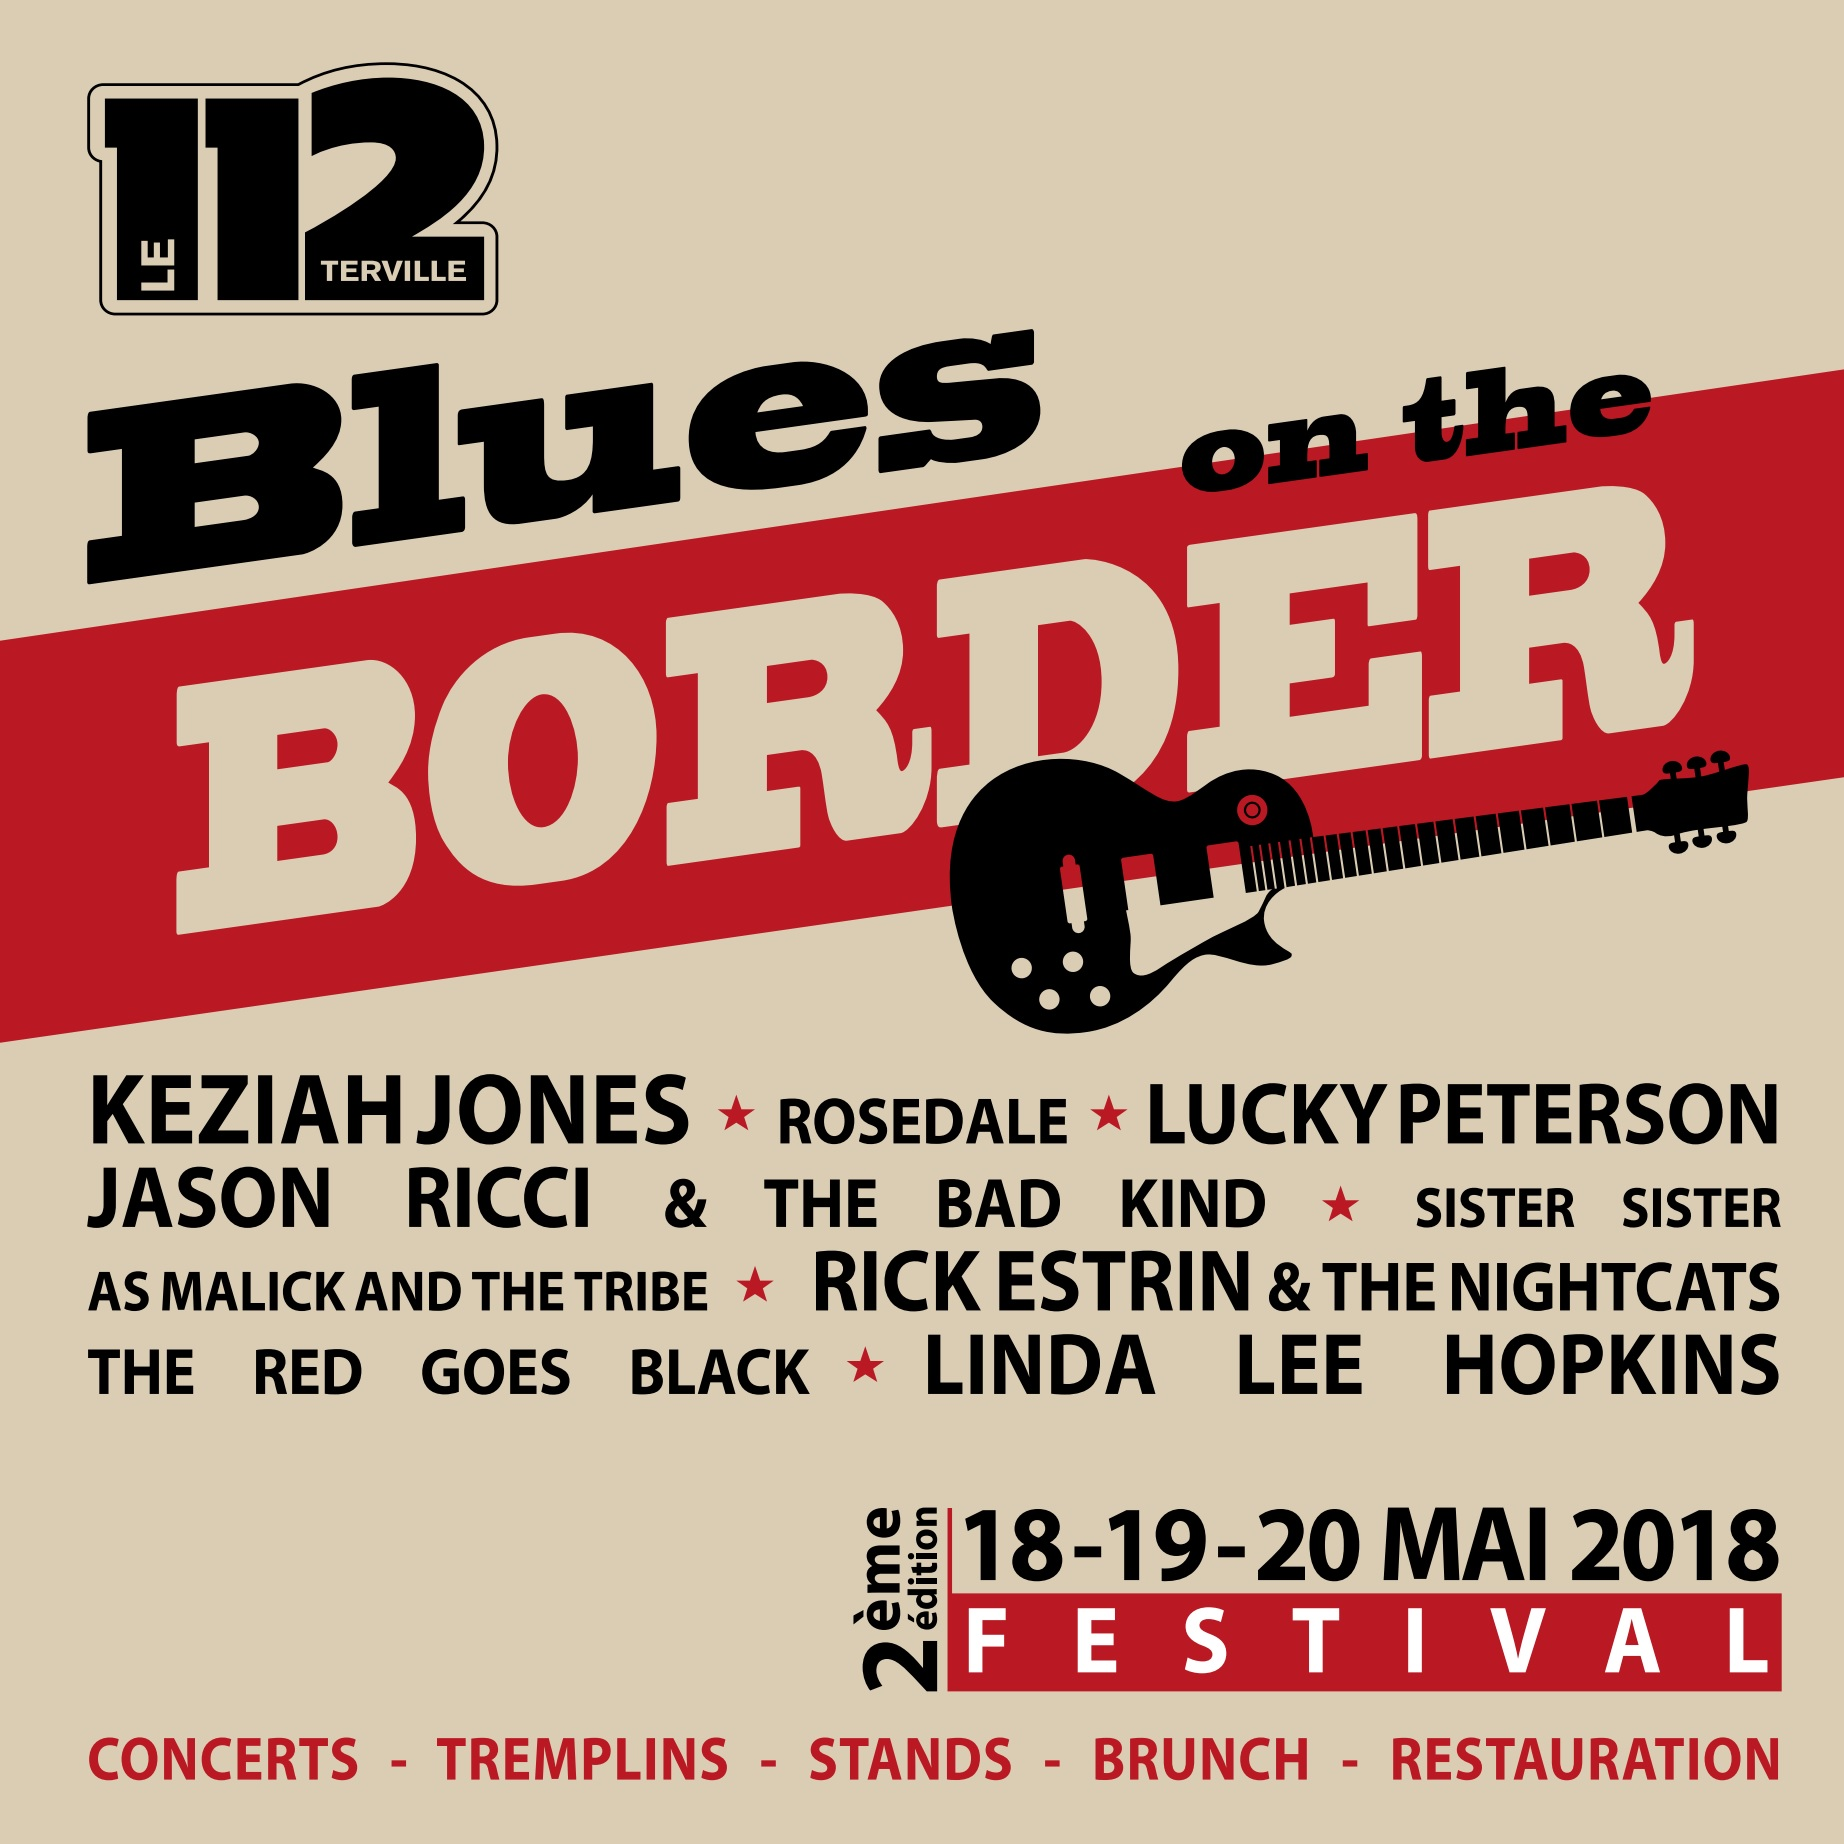 Festival BOB - Blues On the Border - PROGRAMME